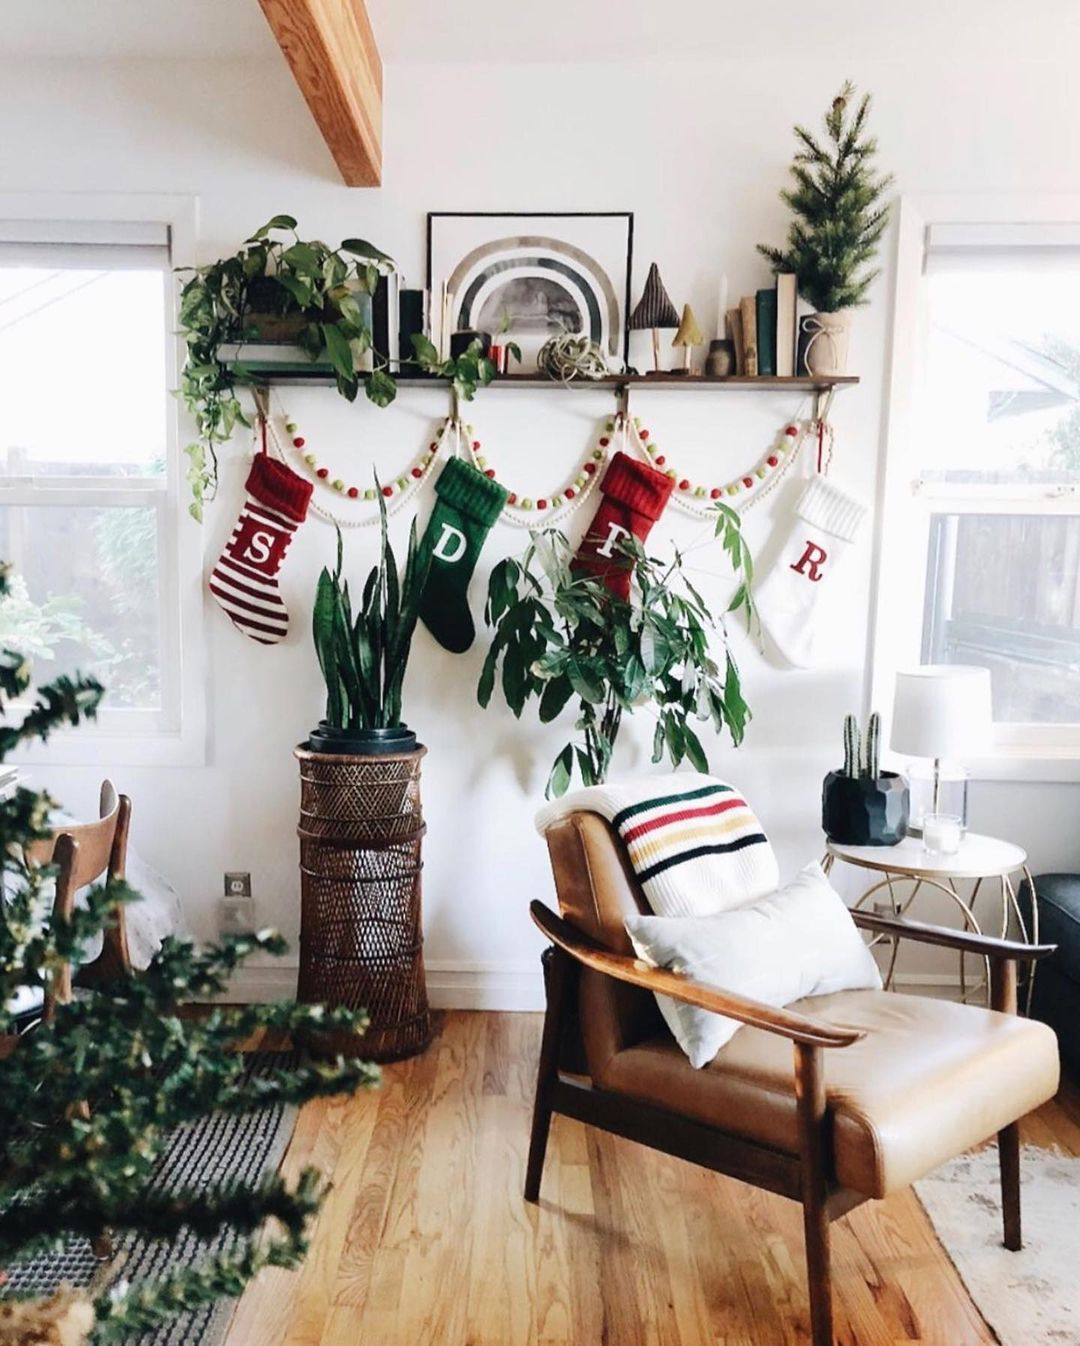 This Little Habit Makes My Holiday Gifting So Much Simpler